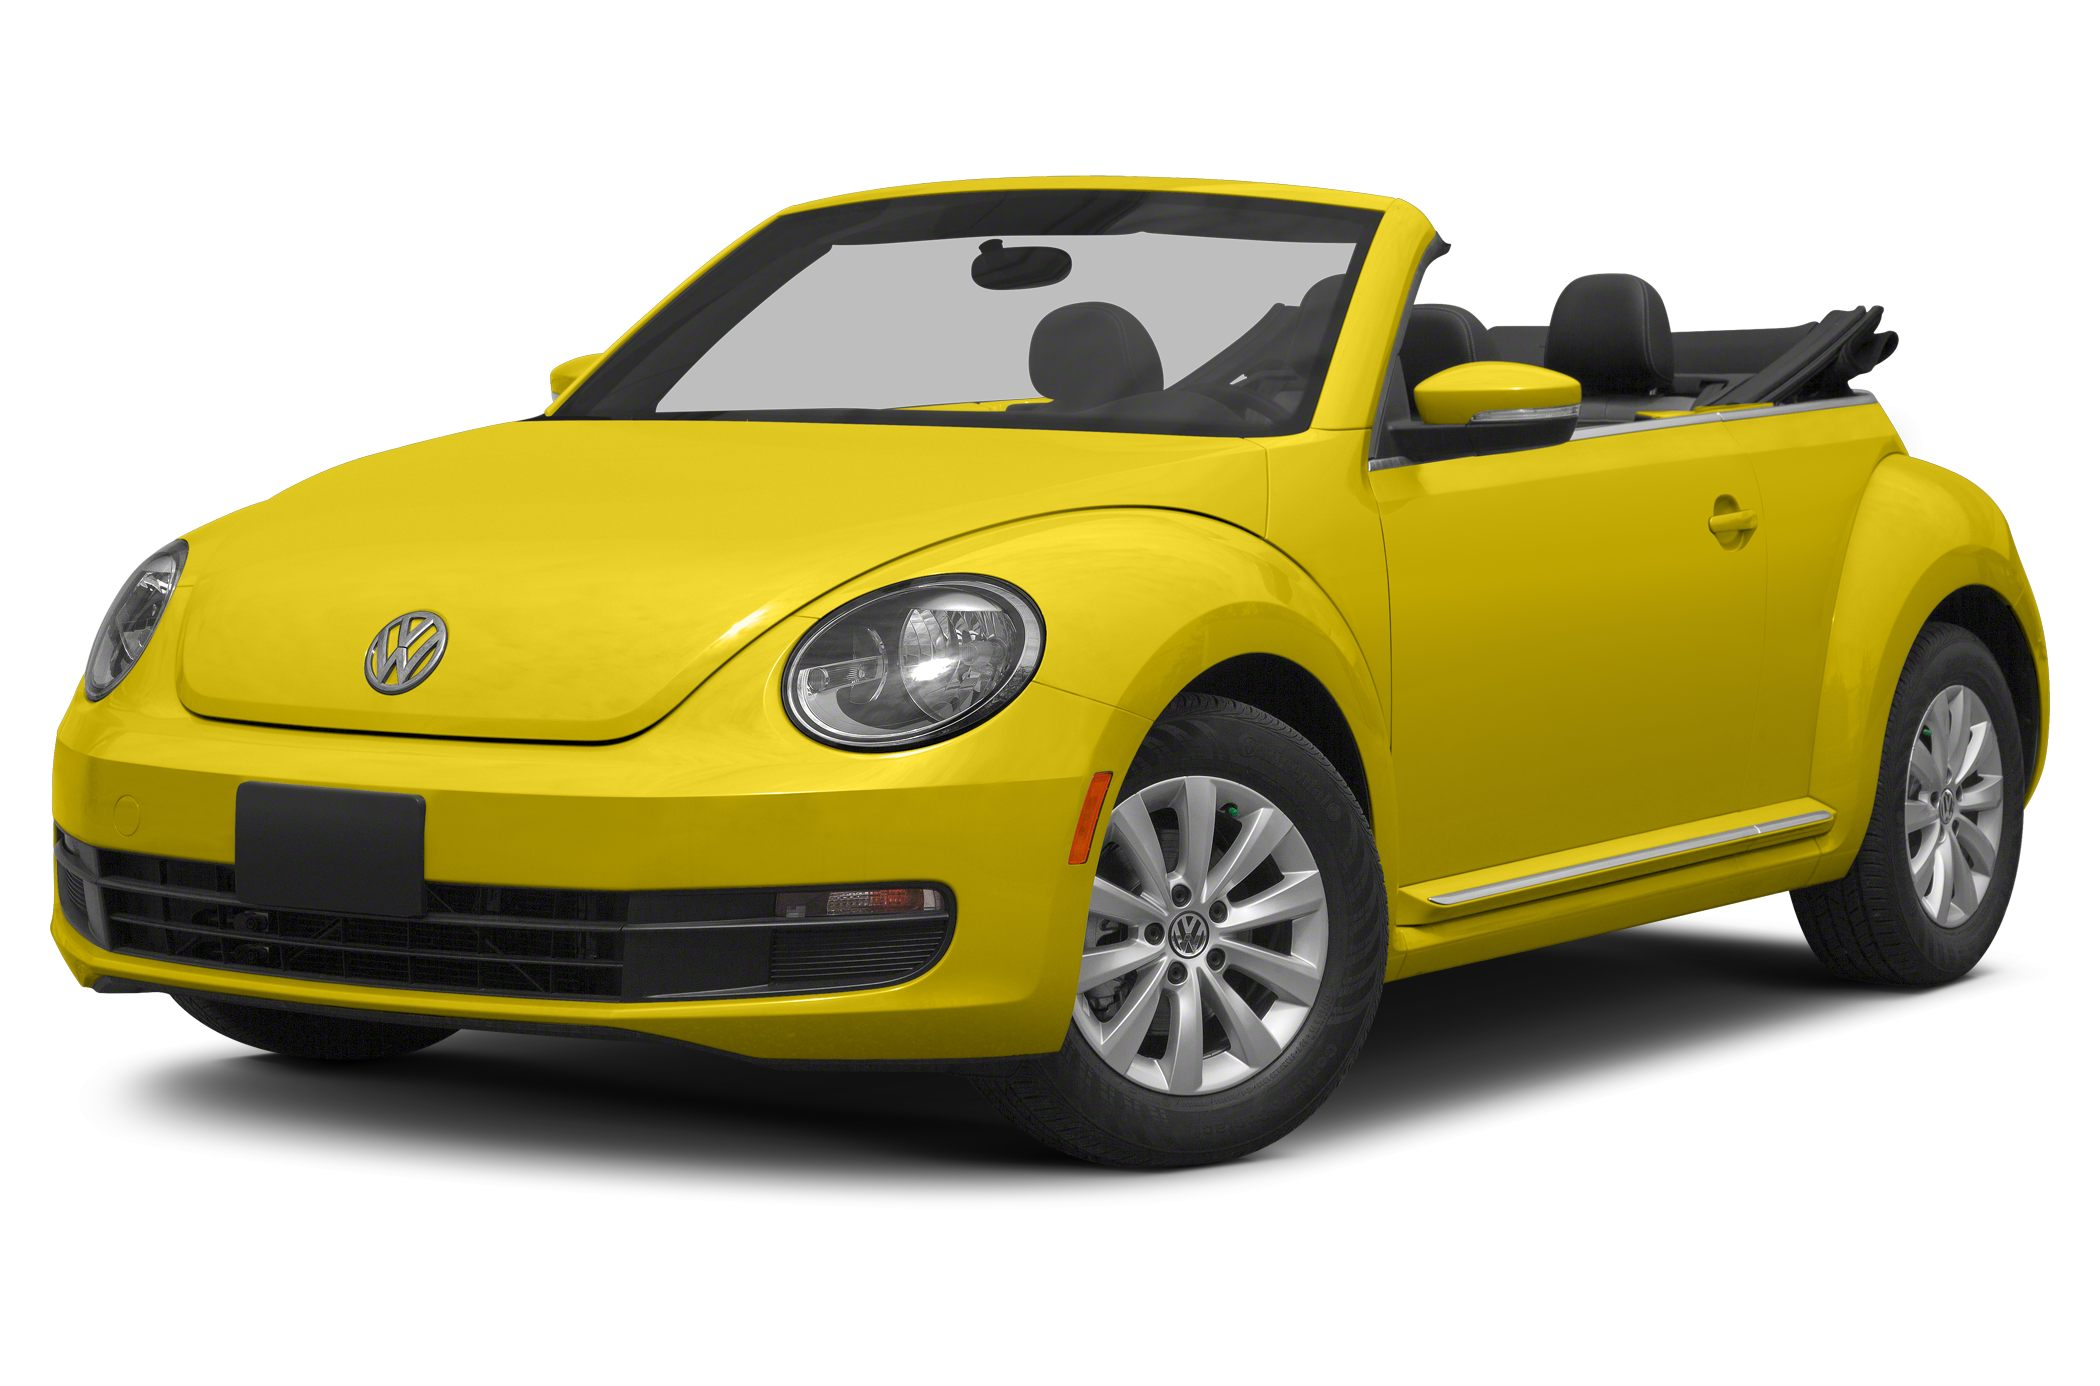 2013 Volkswagen Beetle 25 Miles 47140Color OTHER Stock IP8839 VIN 3VW5P7AT8DM810303